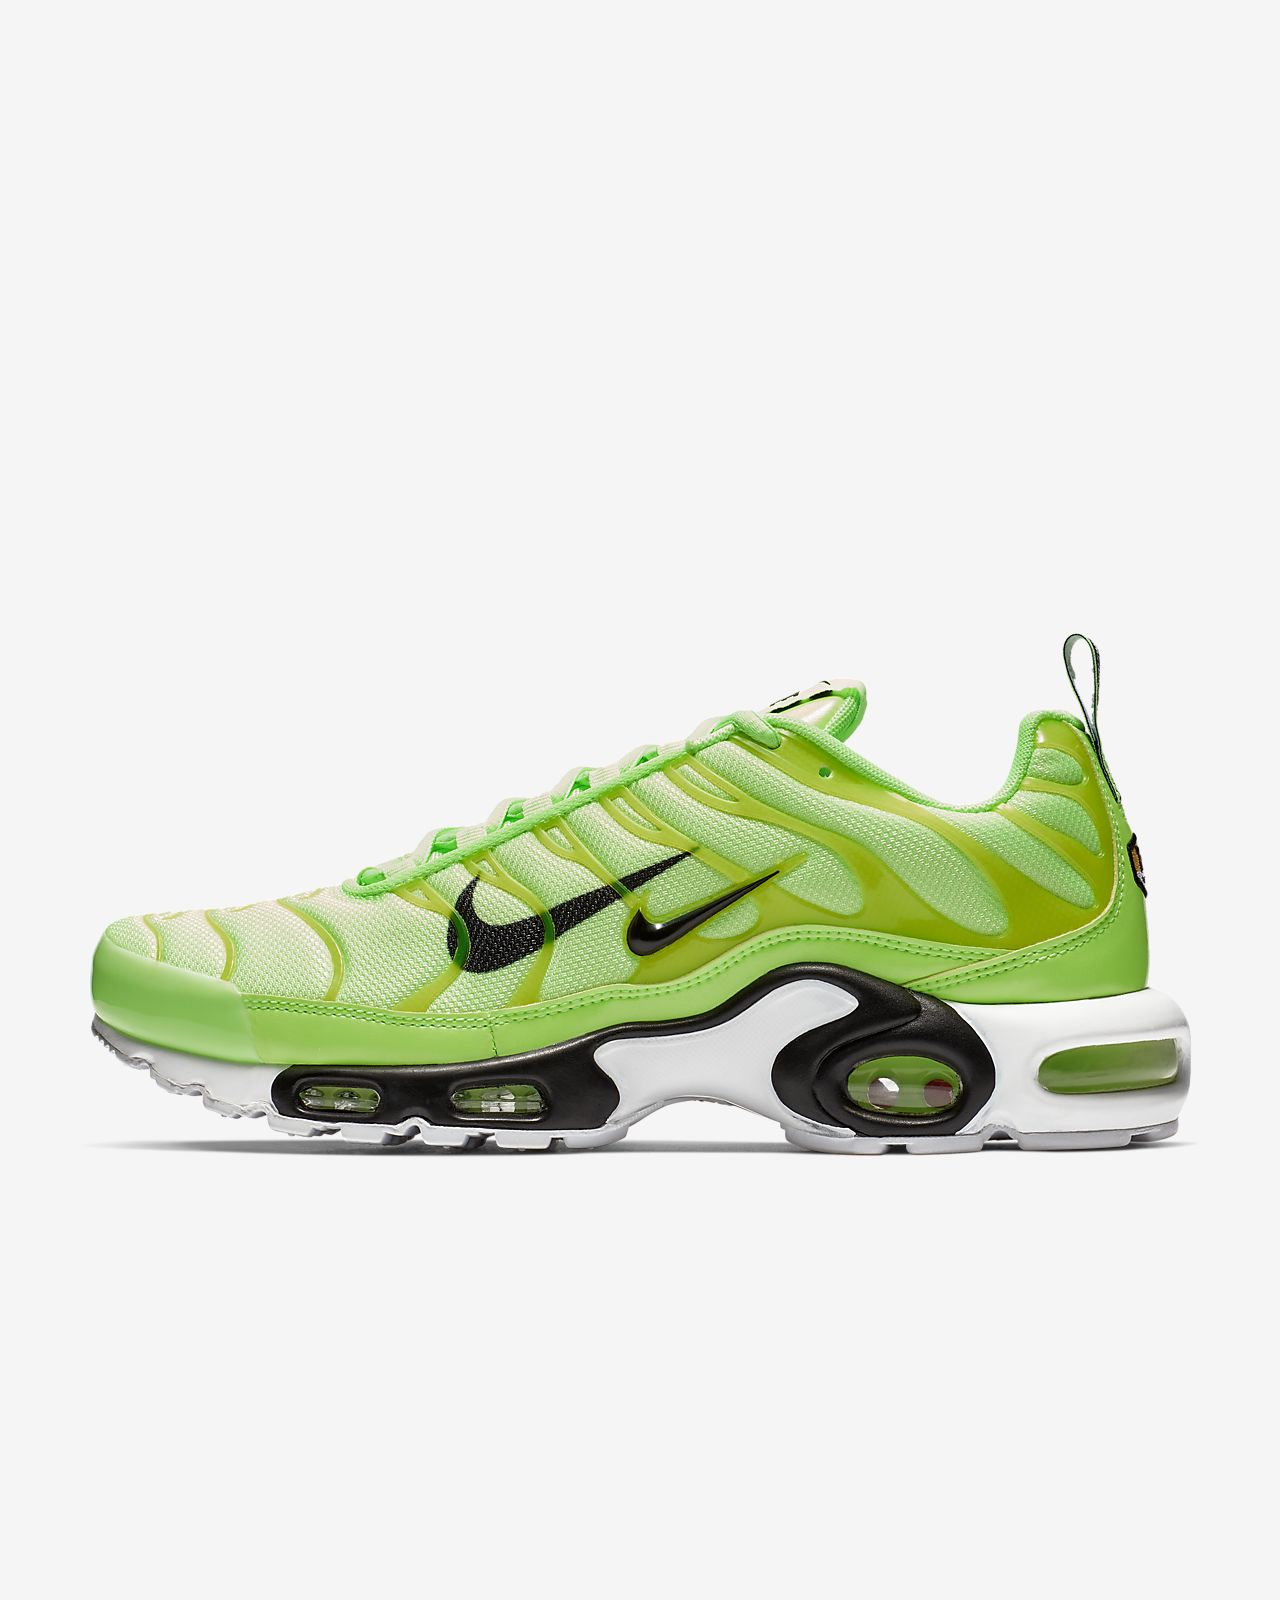 competitive price 5d586 57bdb ... Мужские кроссовки Nike Air Max Plus Premium